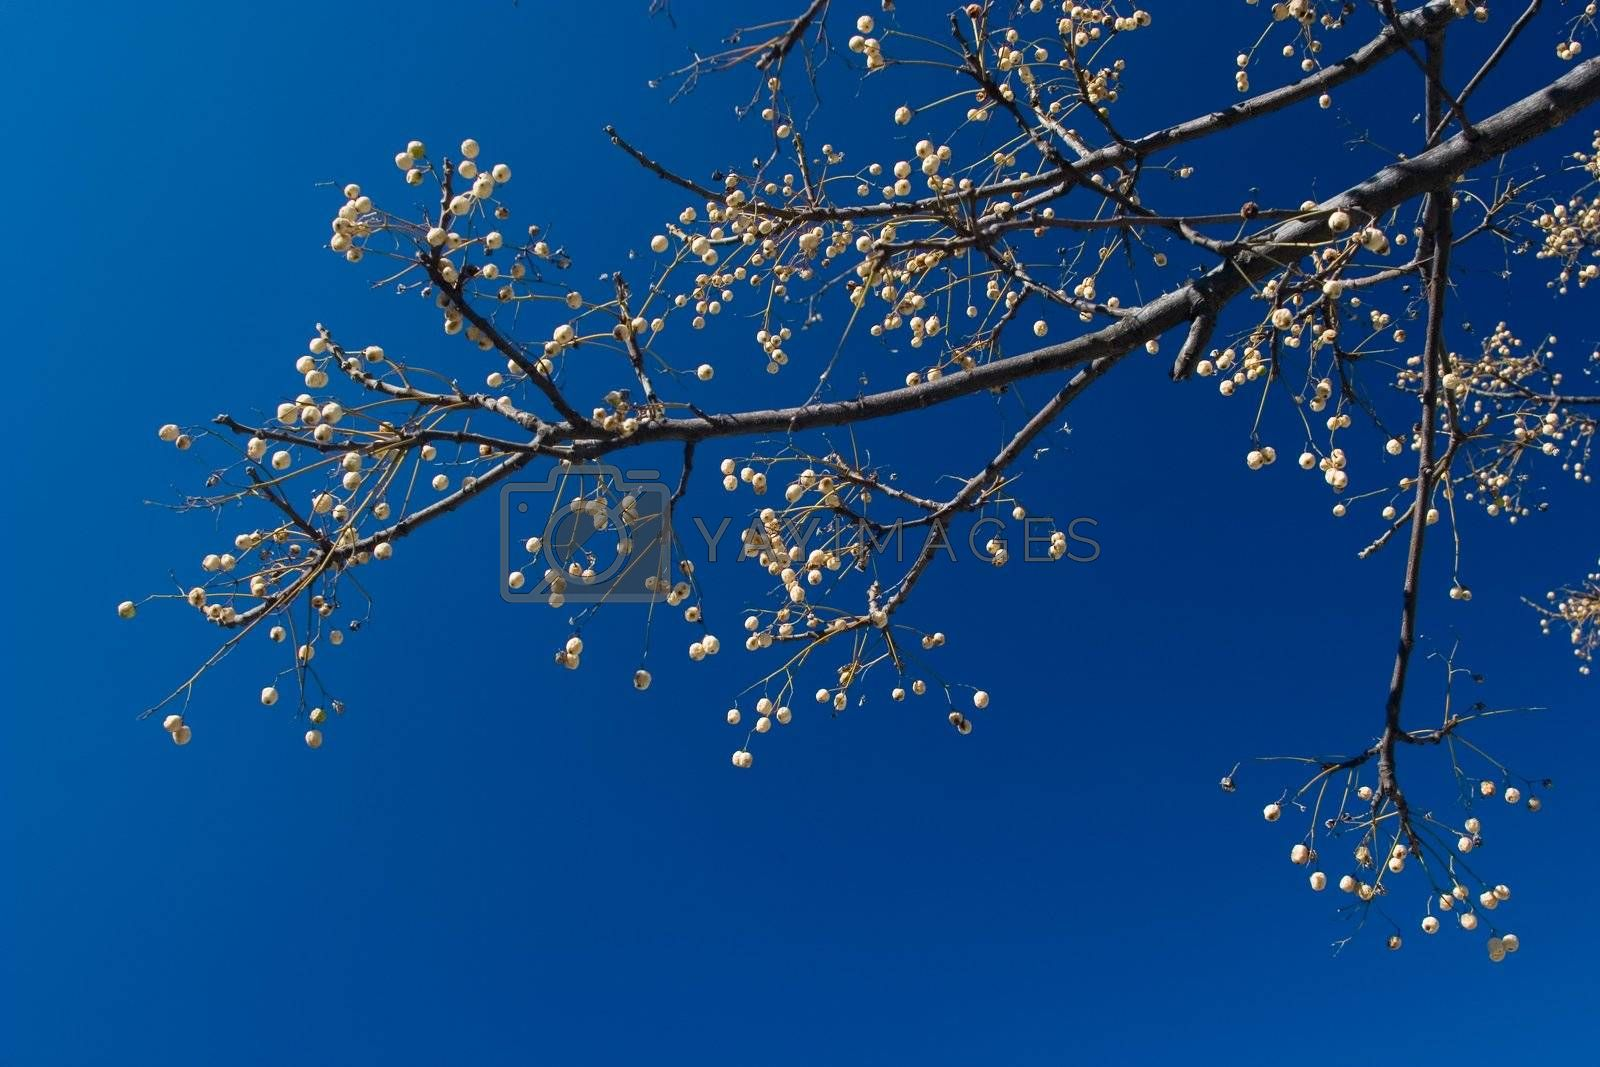 Spring Time: Branch of tree against deep blue sky